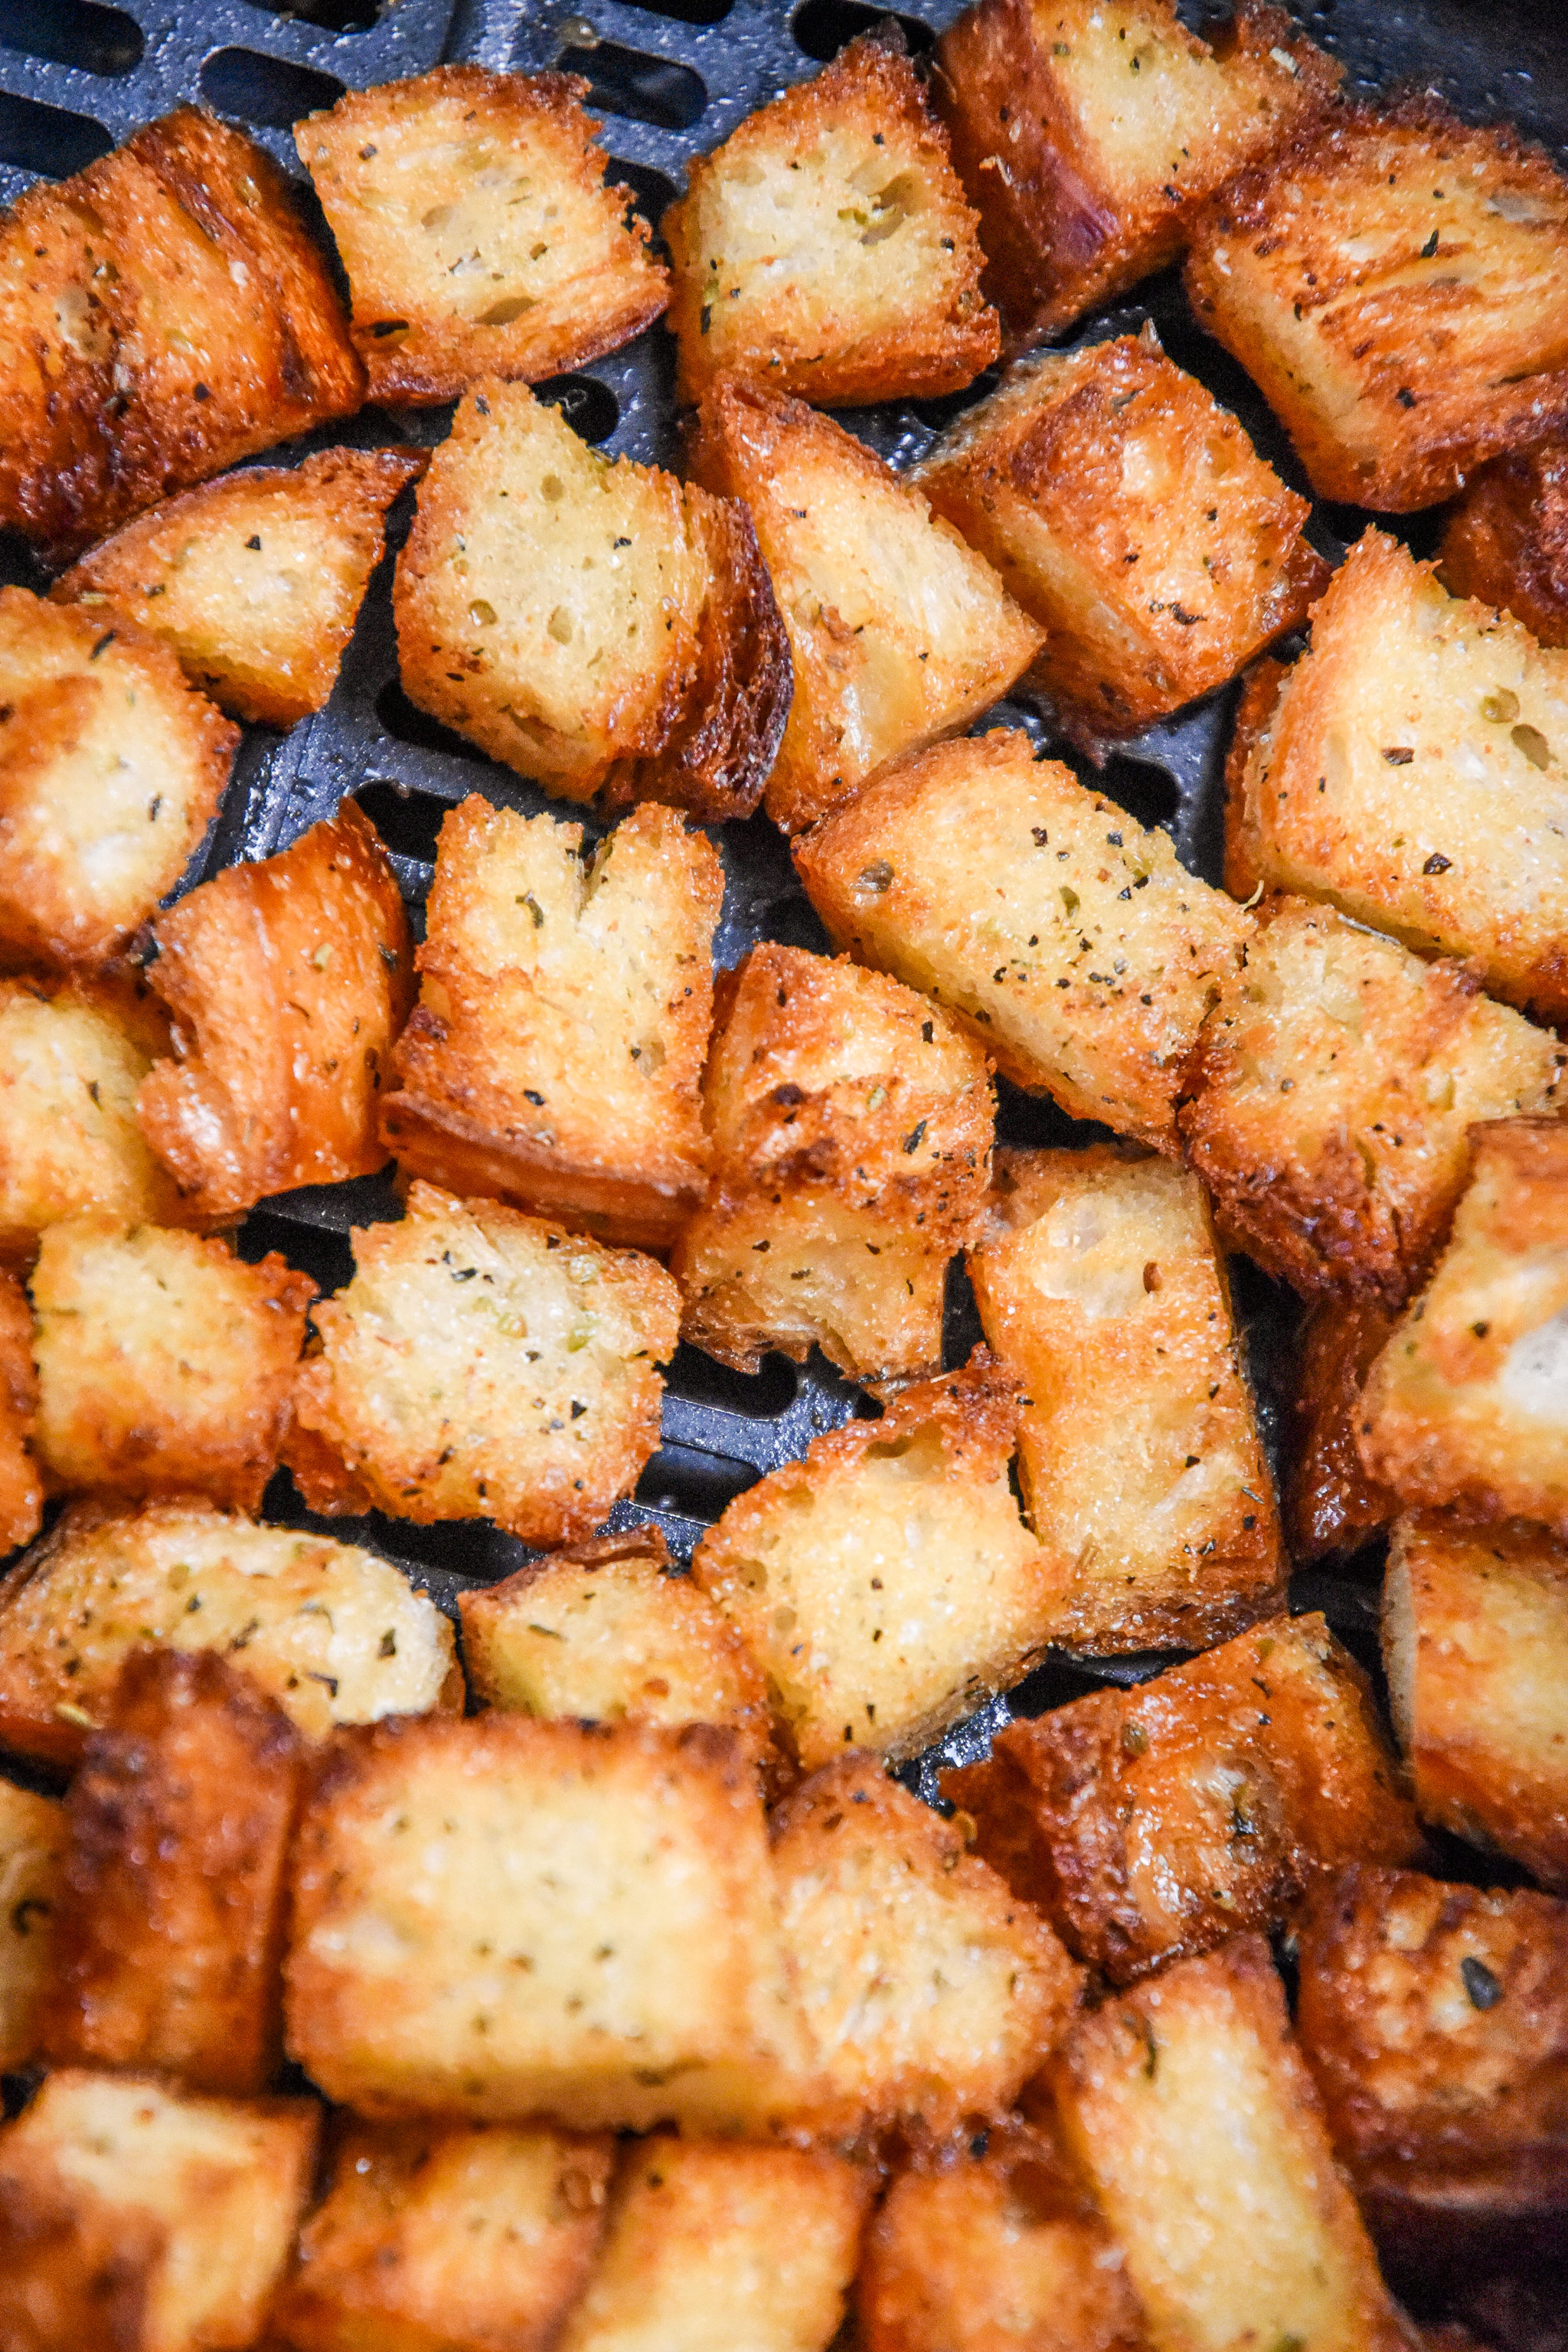 cooked croutons in an air fryer.